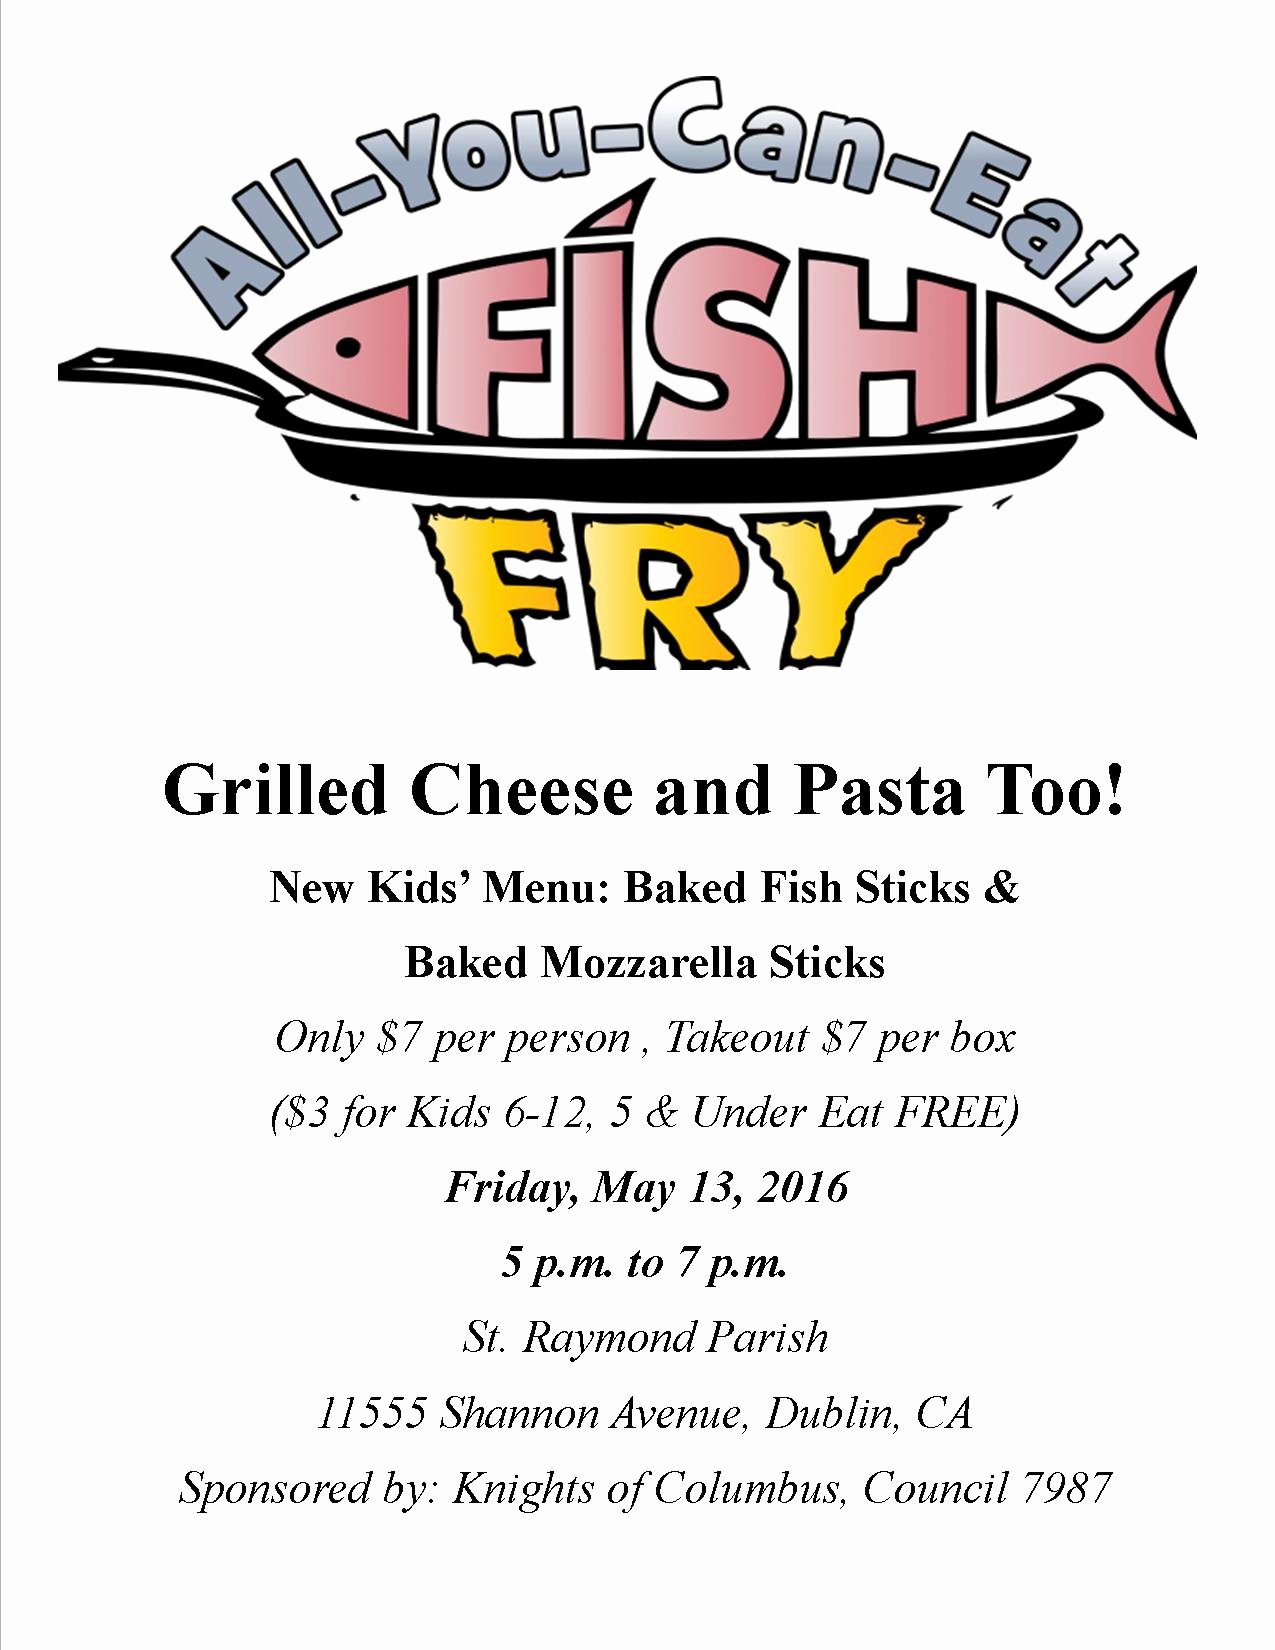 St Raymond Catholic Church – Next Fish Fry – May 13th 2016